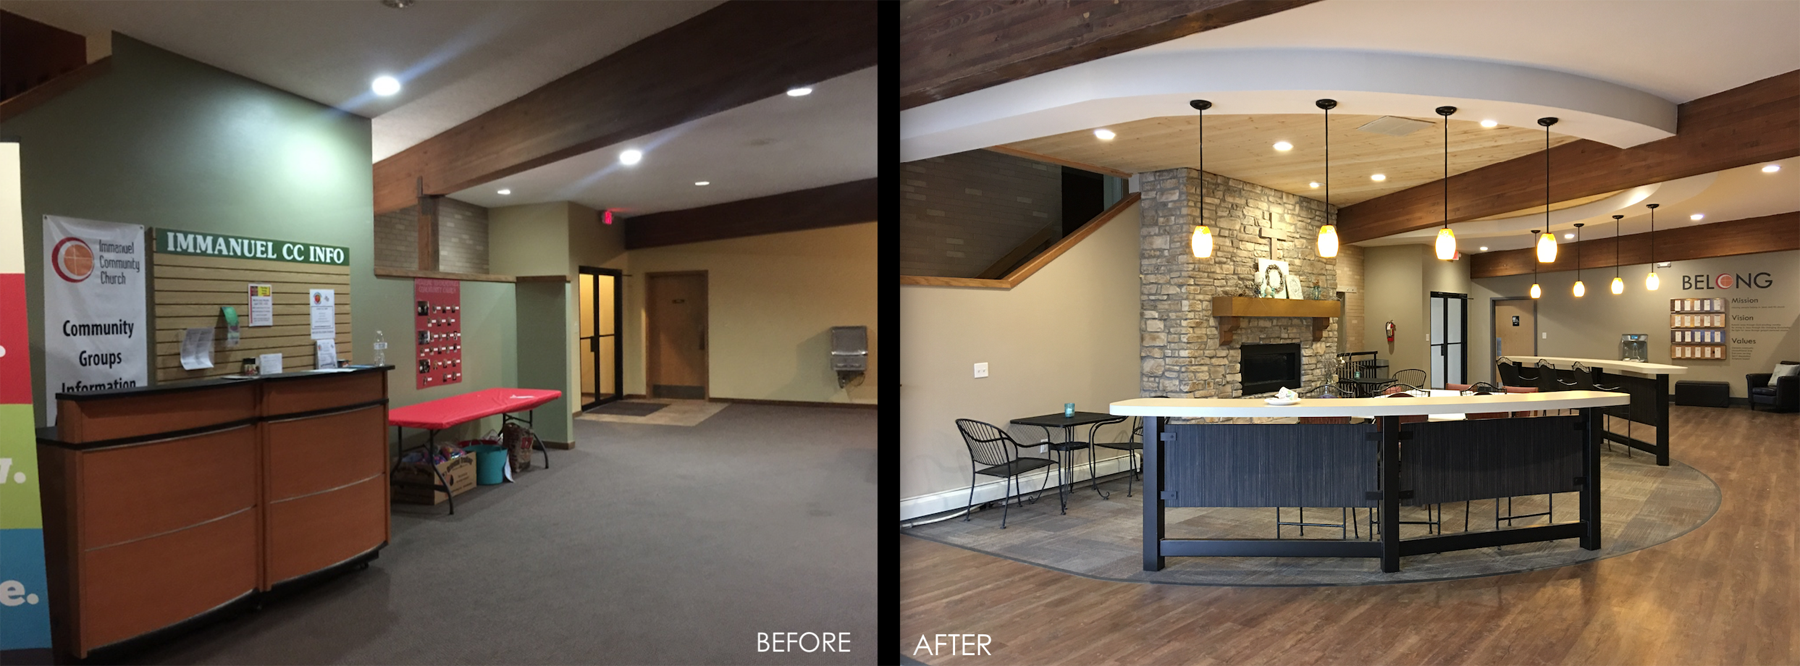 Church renovation. Church foyer. modern church foyer. church fireplace.